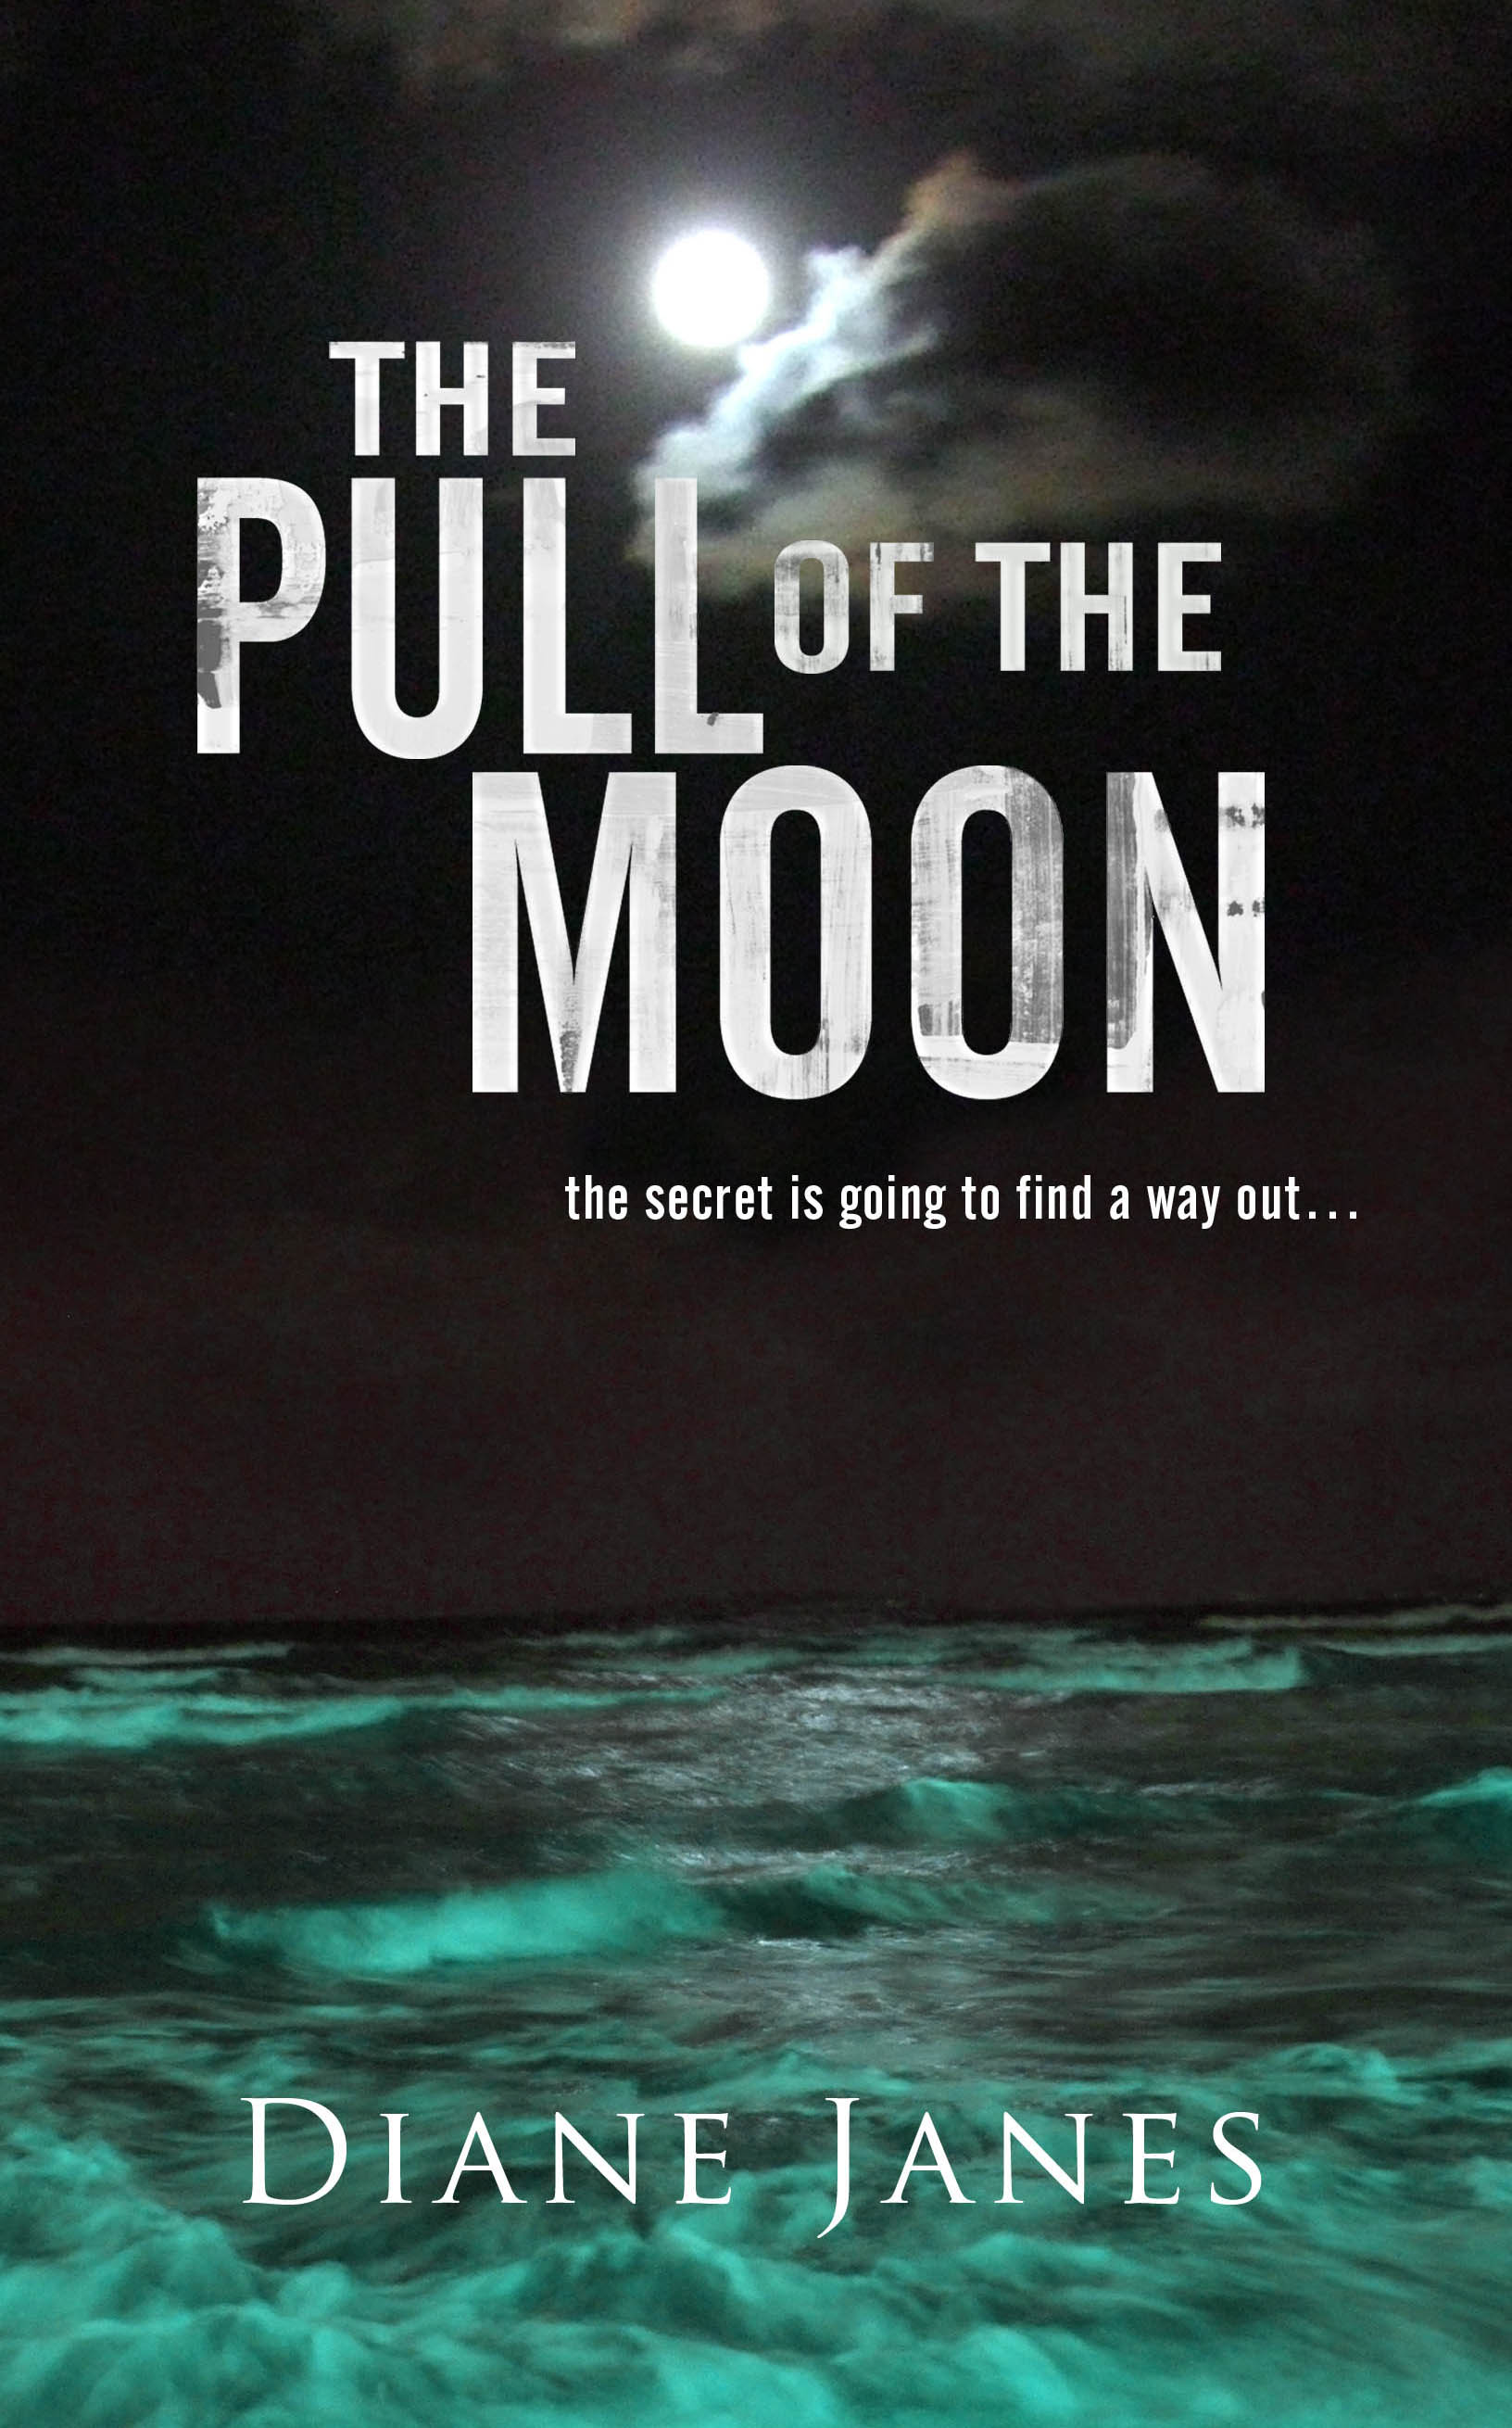 The Pull of the Moon